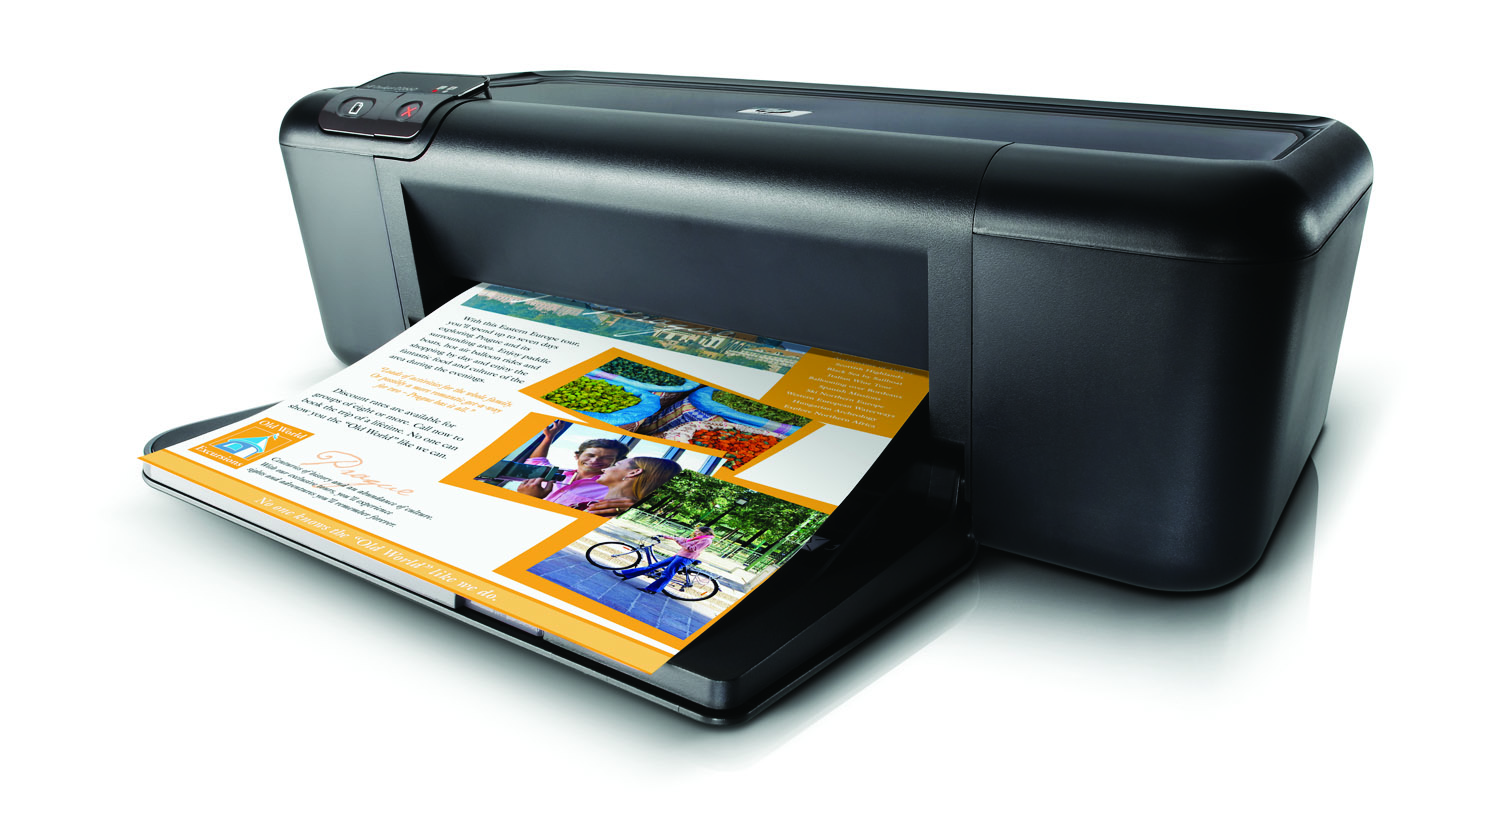 Hp officejet 7000 wide format hard reset Do